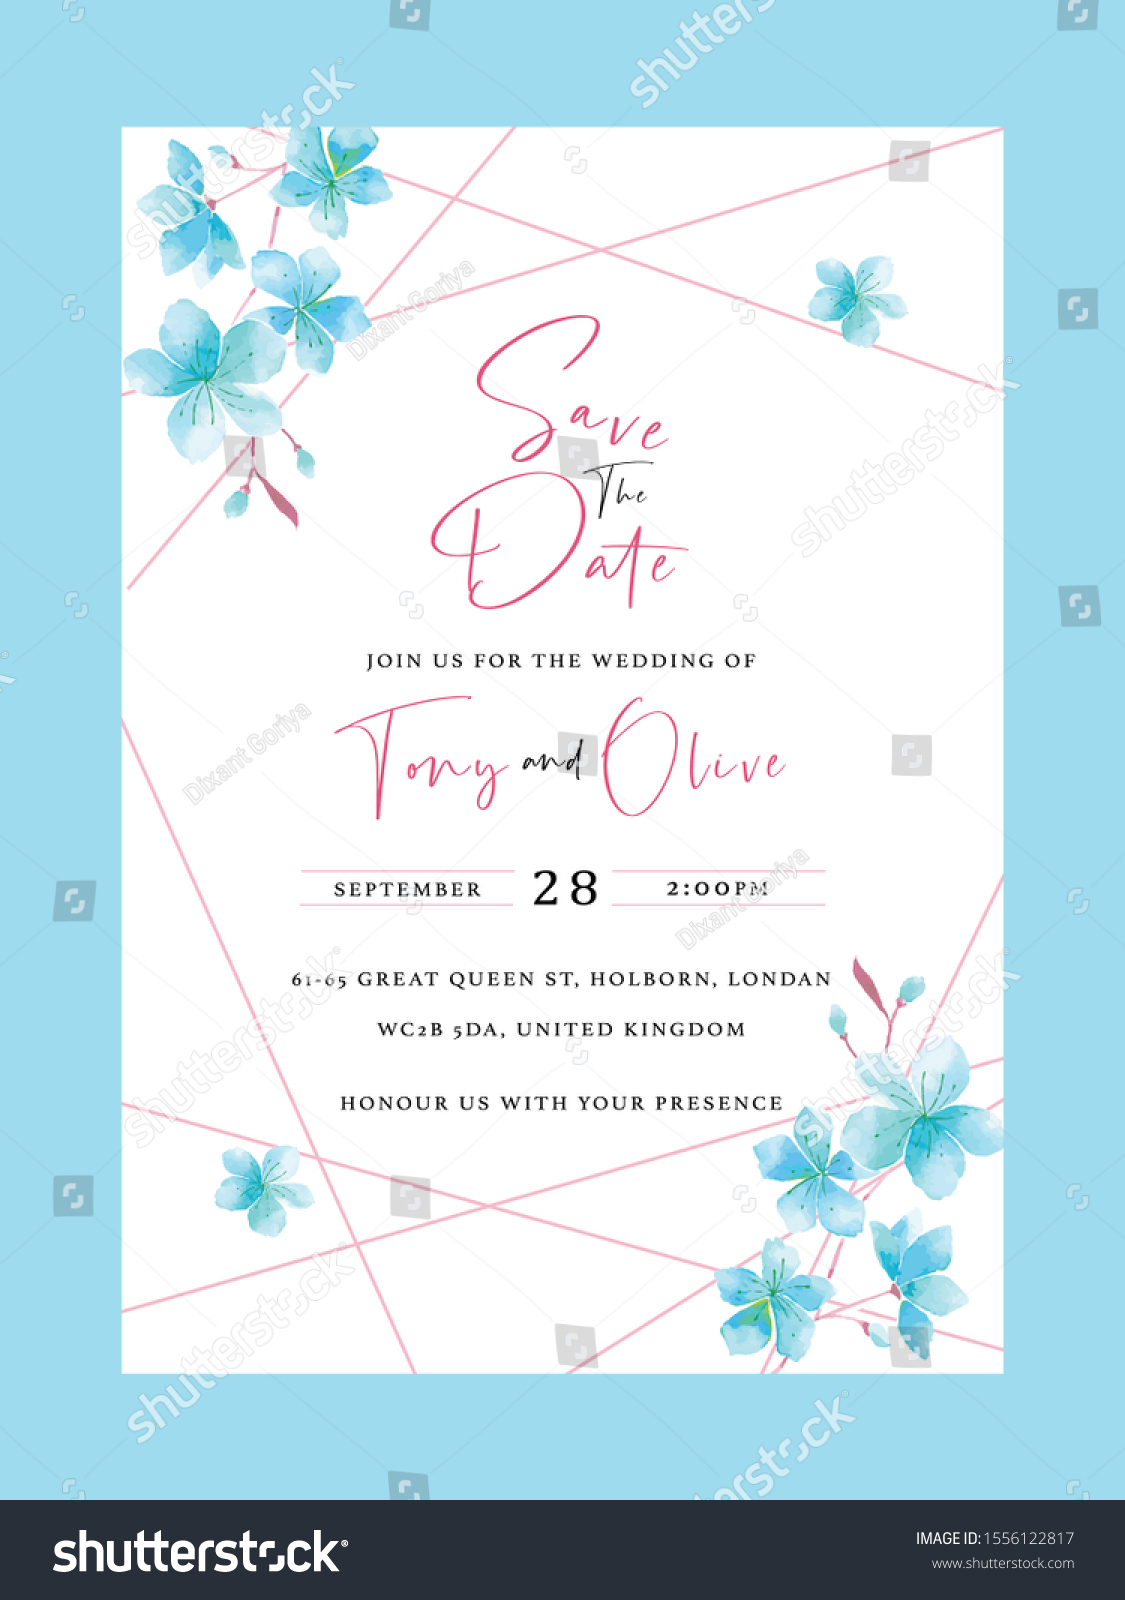 Wedding Invitation Card Template Text Engagement Stock Vector (Royalty  Free) 1556122817